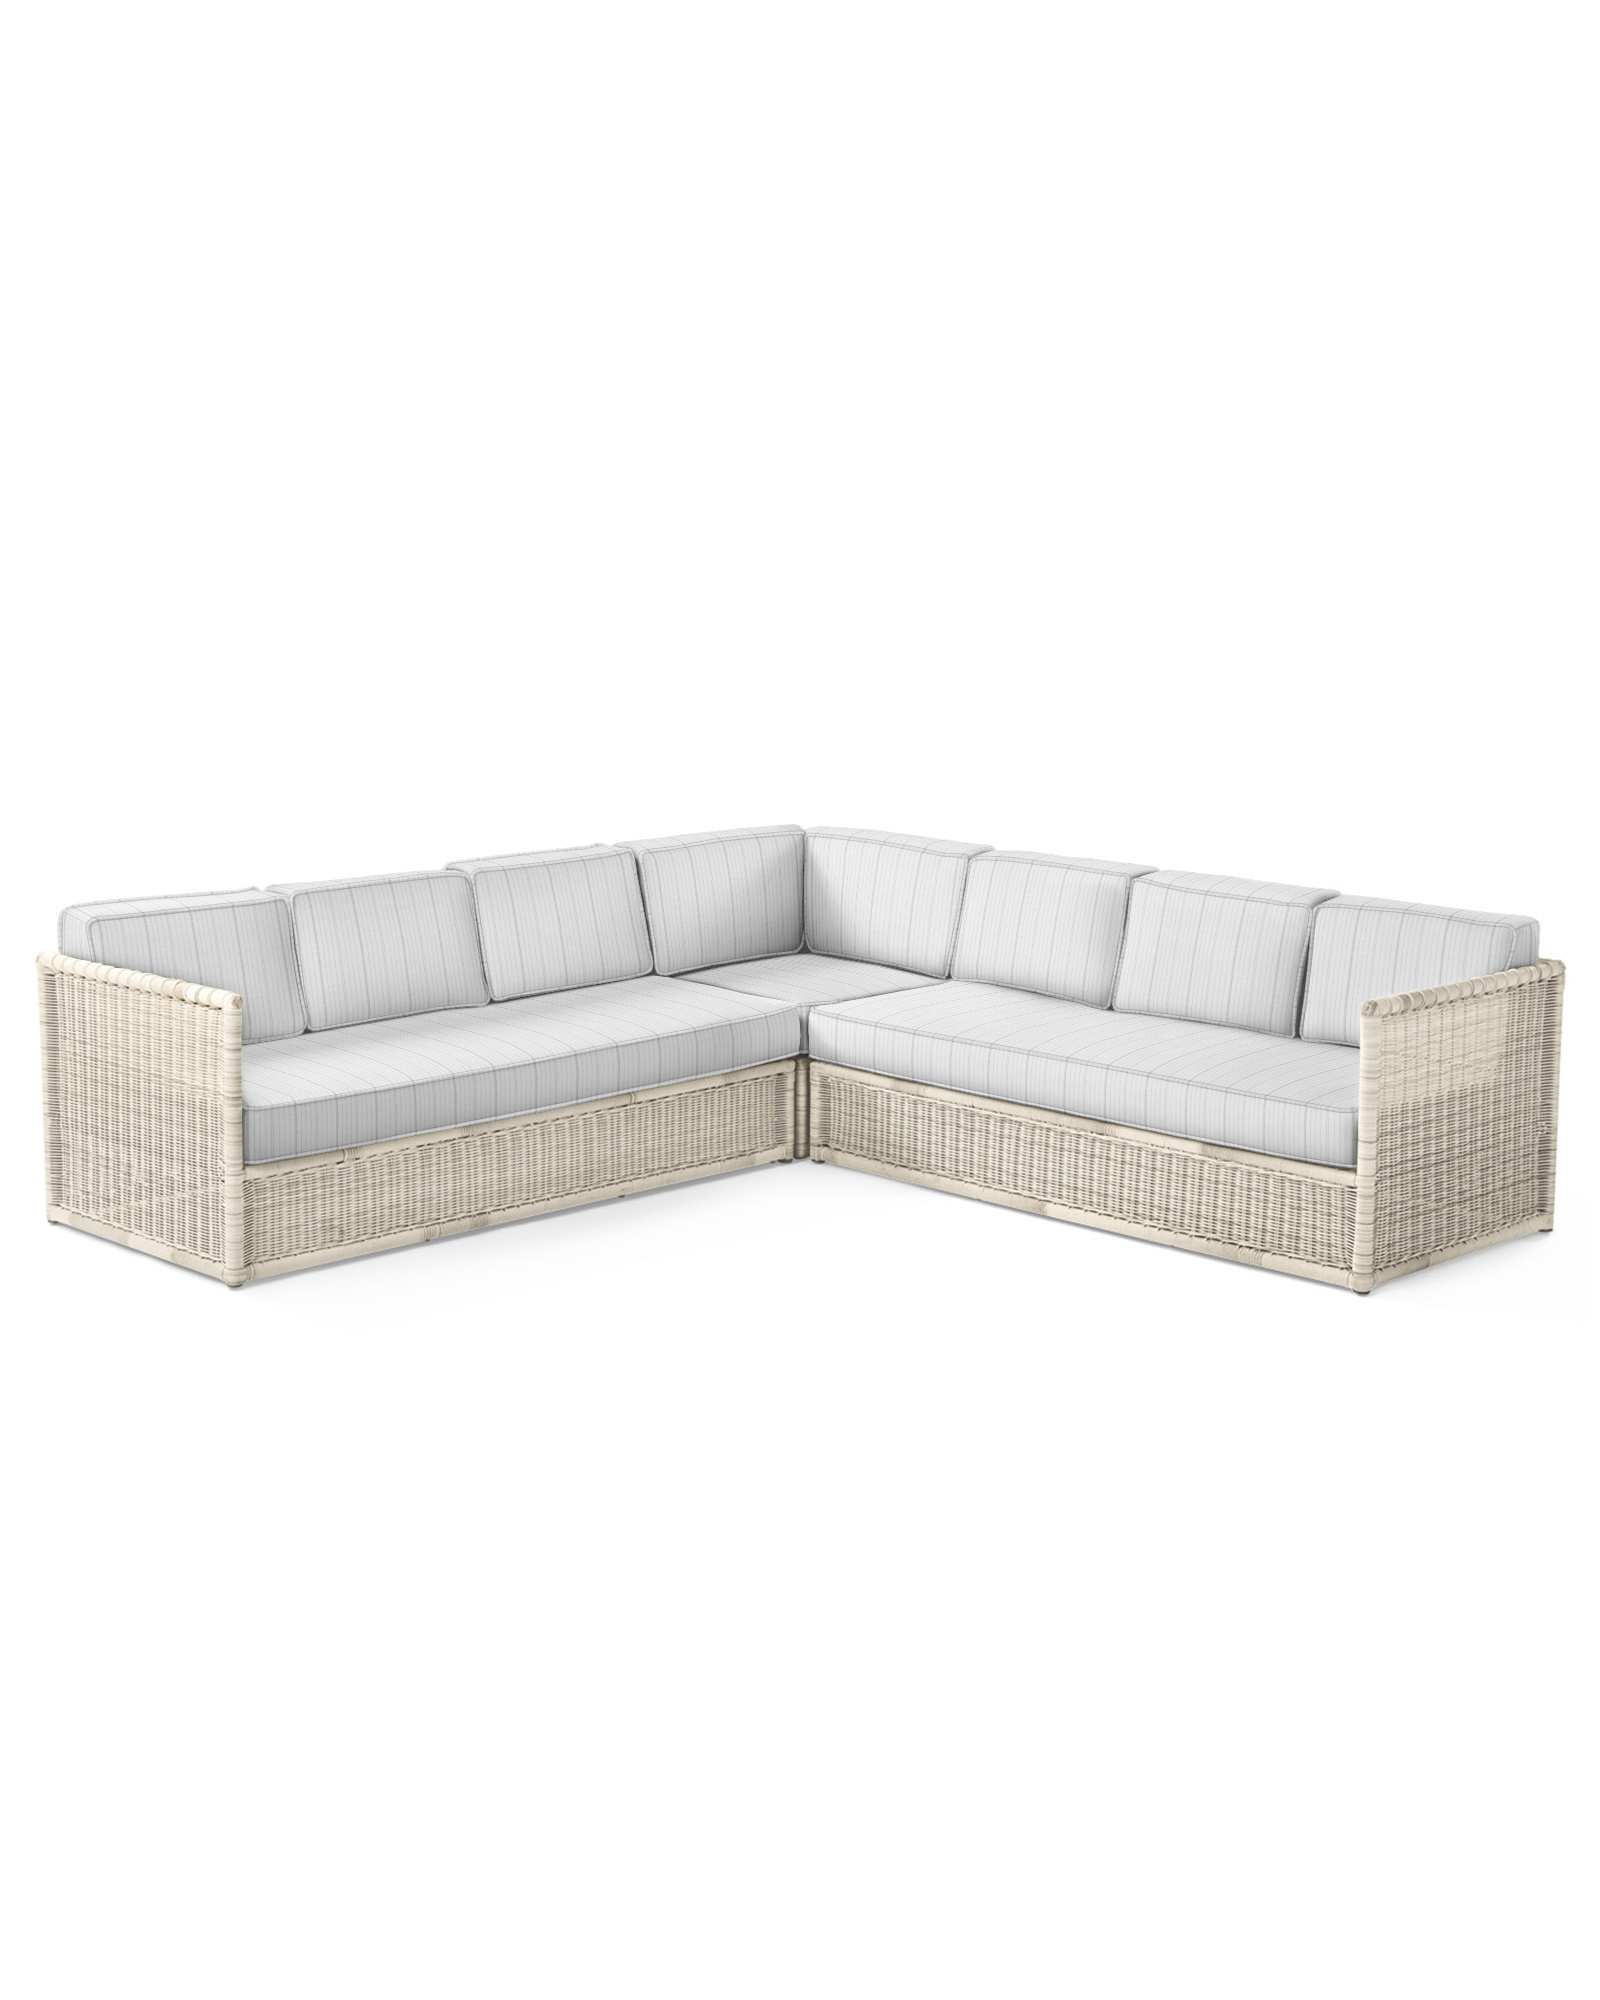 Cushion Cover for Pacifica Corner Sectional, Surf Stripe Smoke